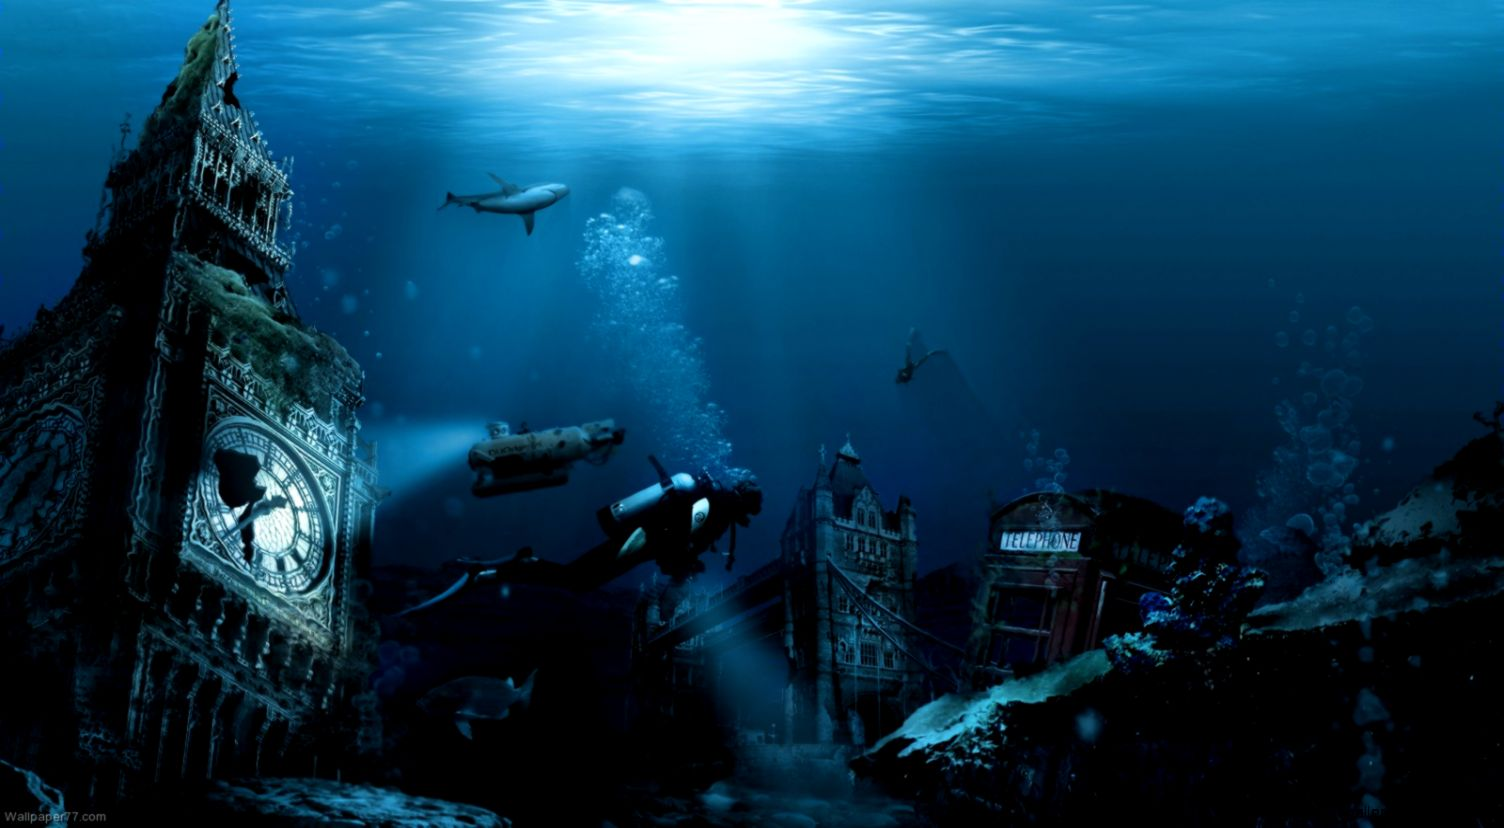 Undersea City 1600x900 pixels  Wallpapers tagged Ocean sea